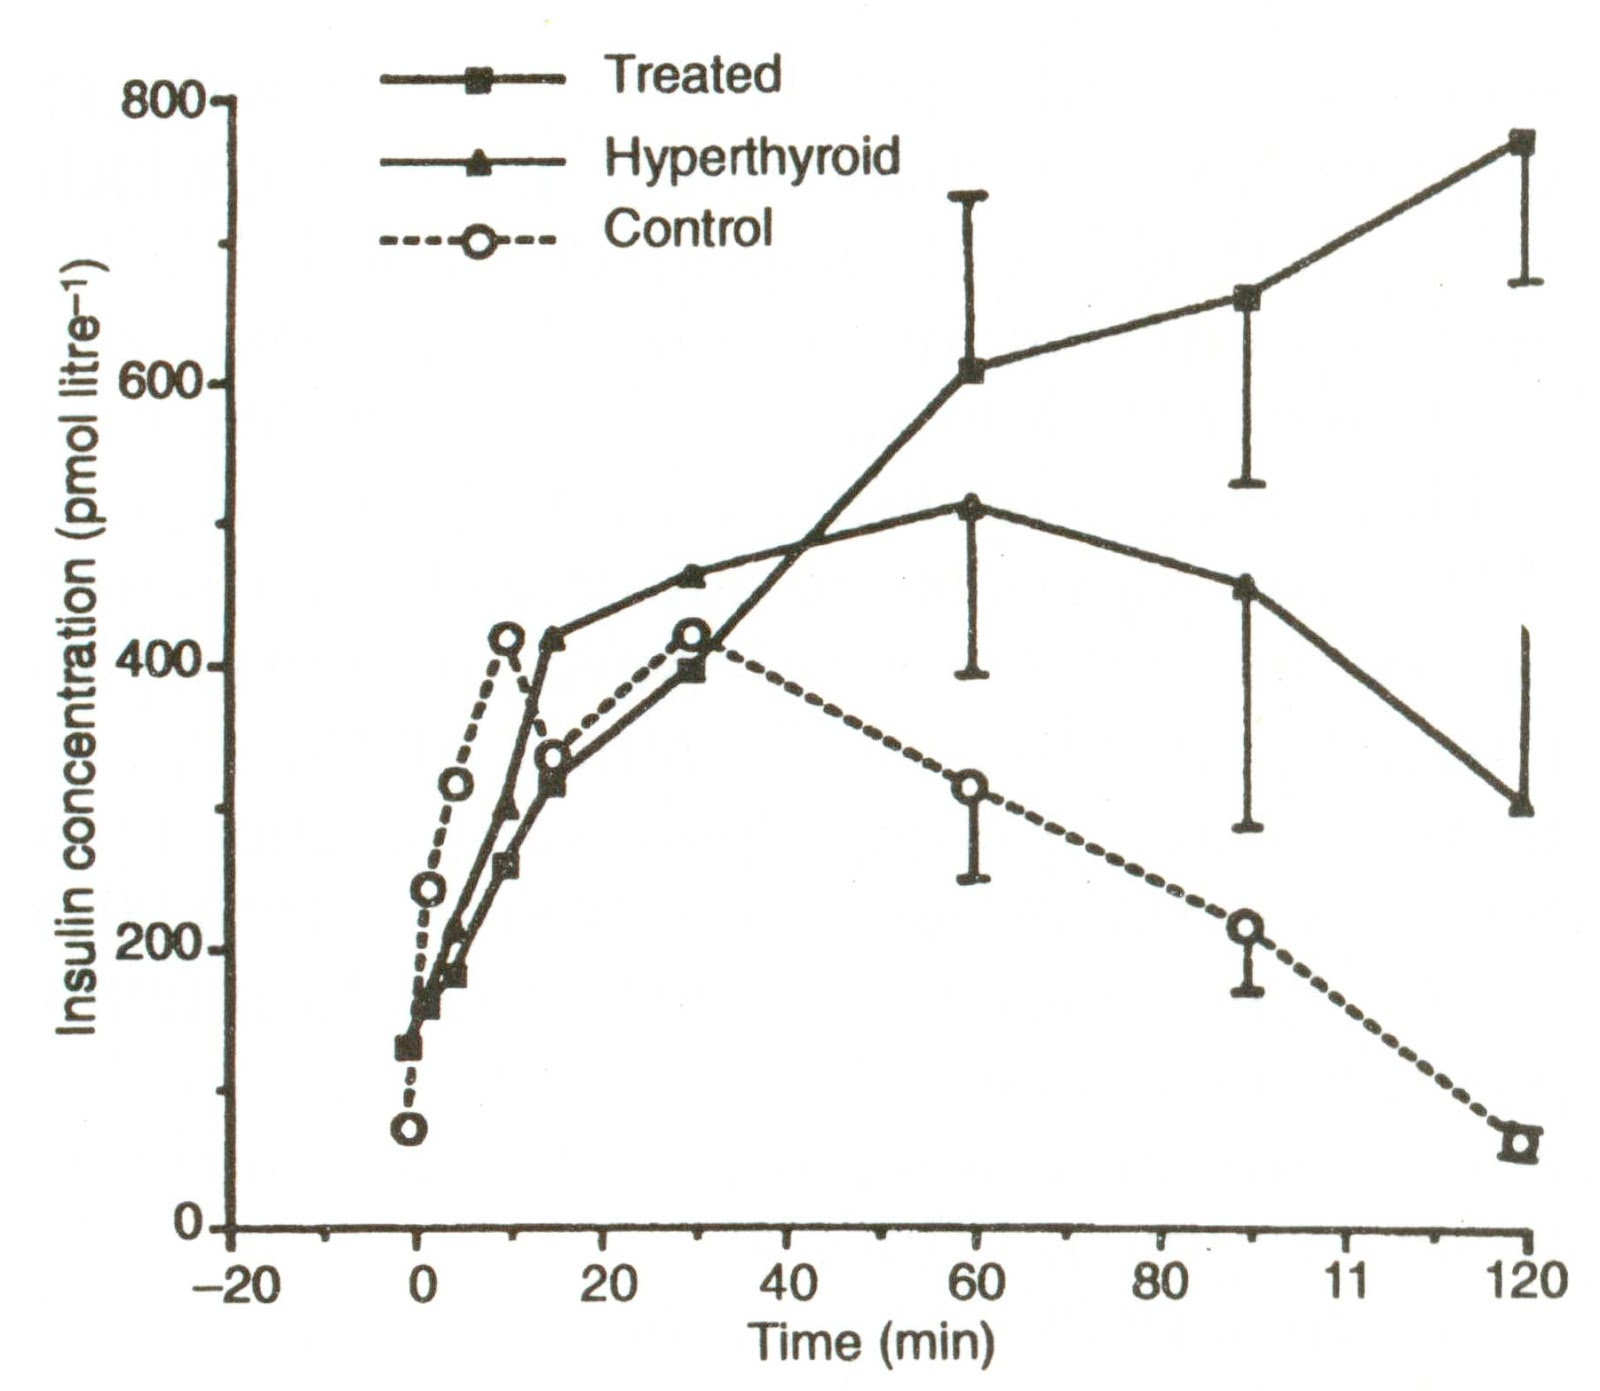 small resolution of serum insulin concentrations in response to intravenous glucose tolerance test in 11 healthy cats 15 cats with untreated hyperthyroidism